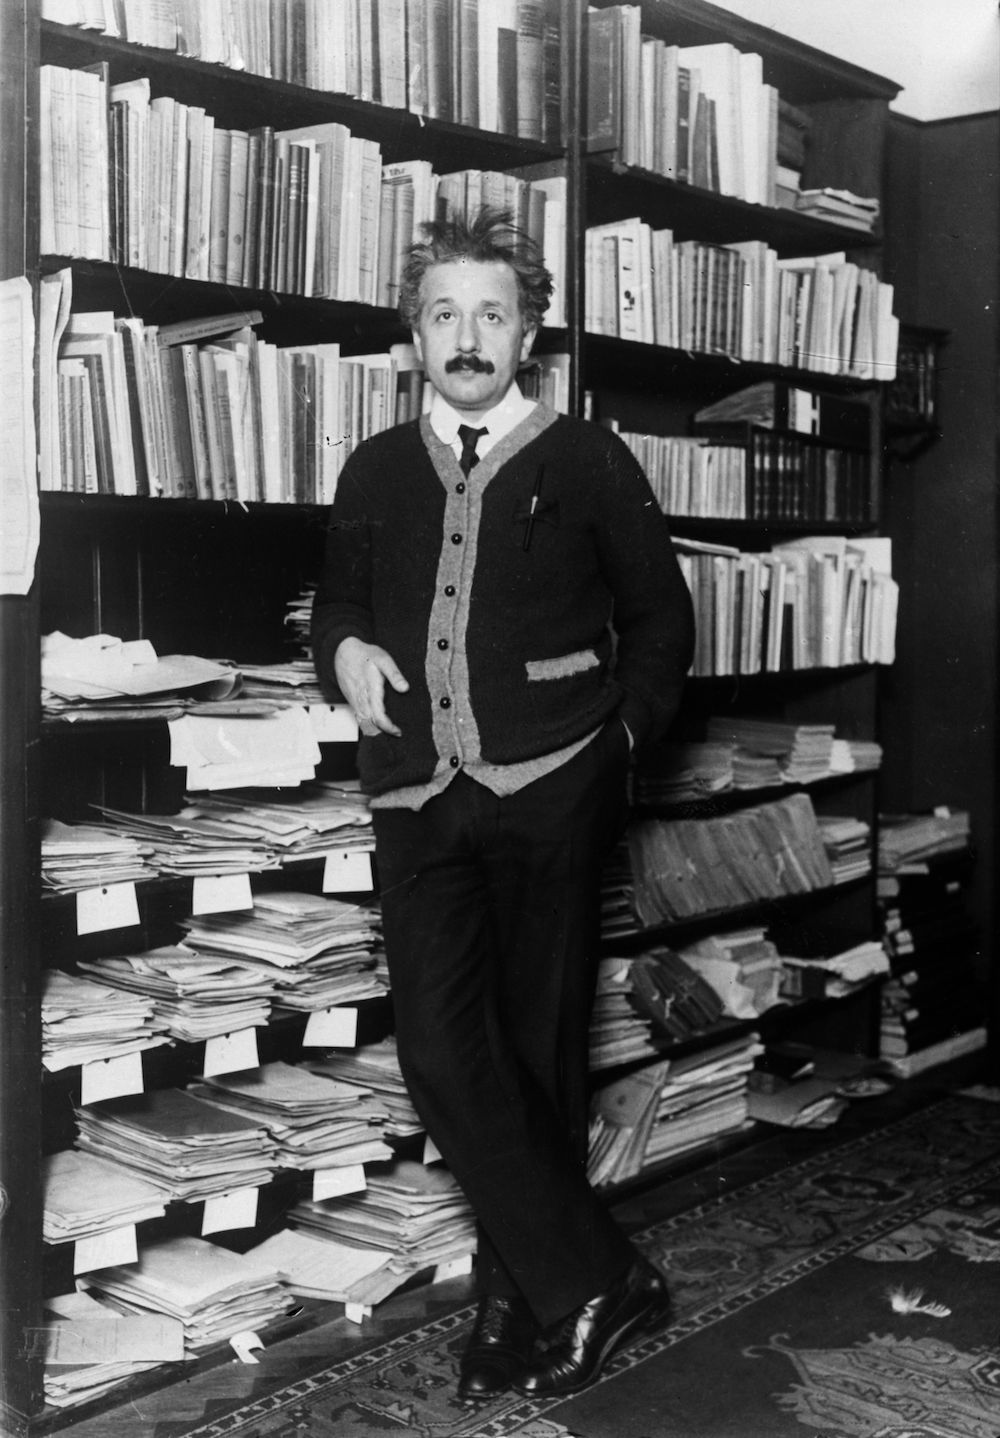 circa 1925: Professor Albert Einstein (1879 - 1955), mathematical physicist at home. (Photo by General Photographic Agency/Getty Images)